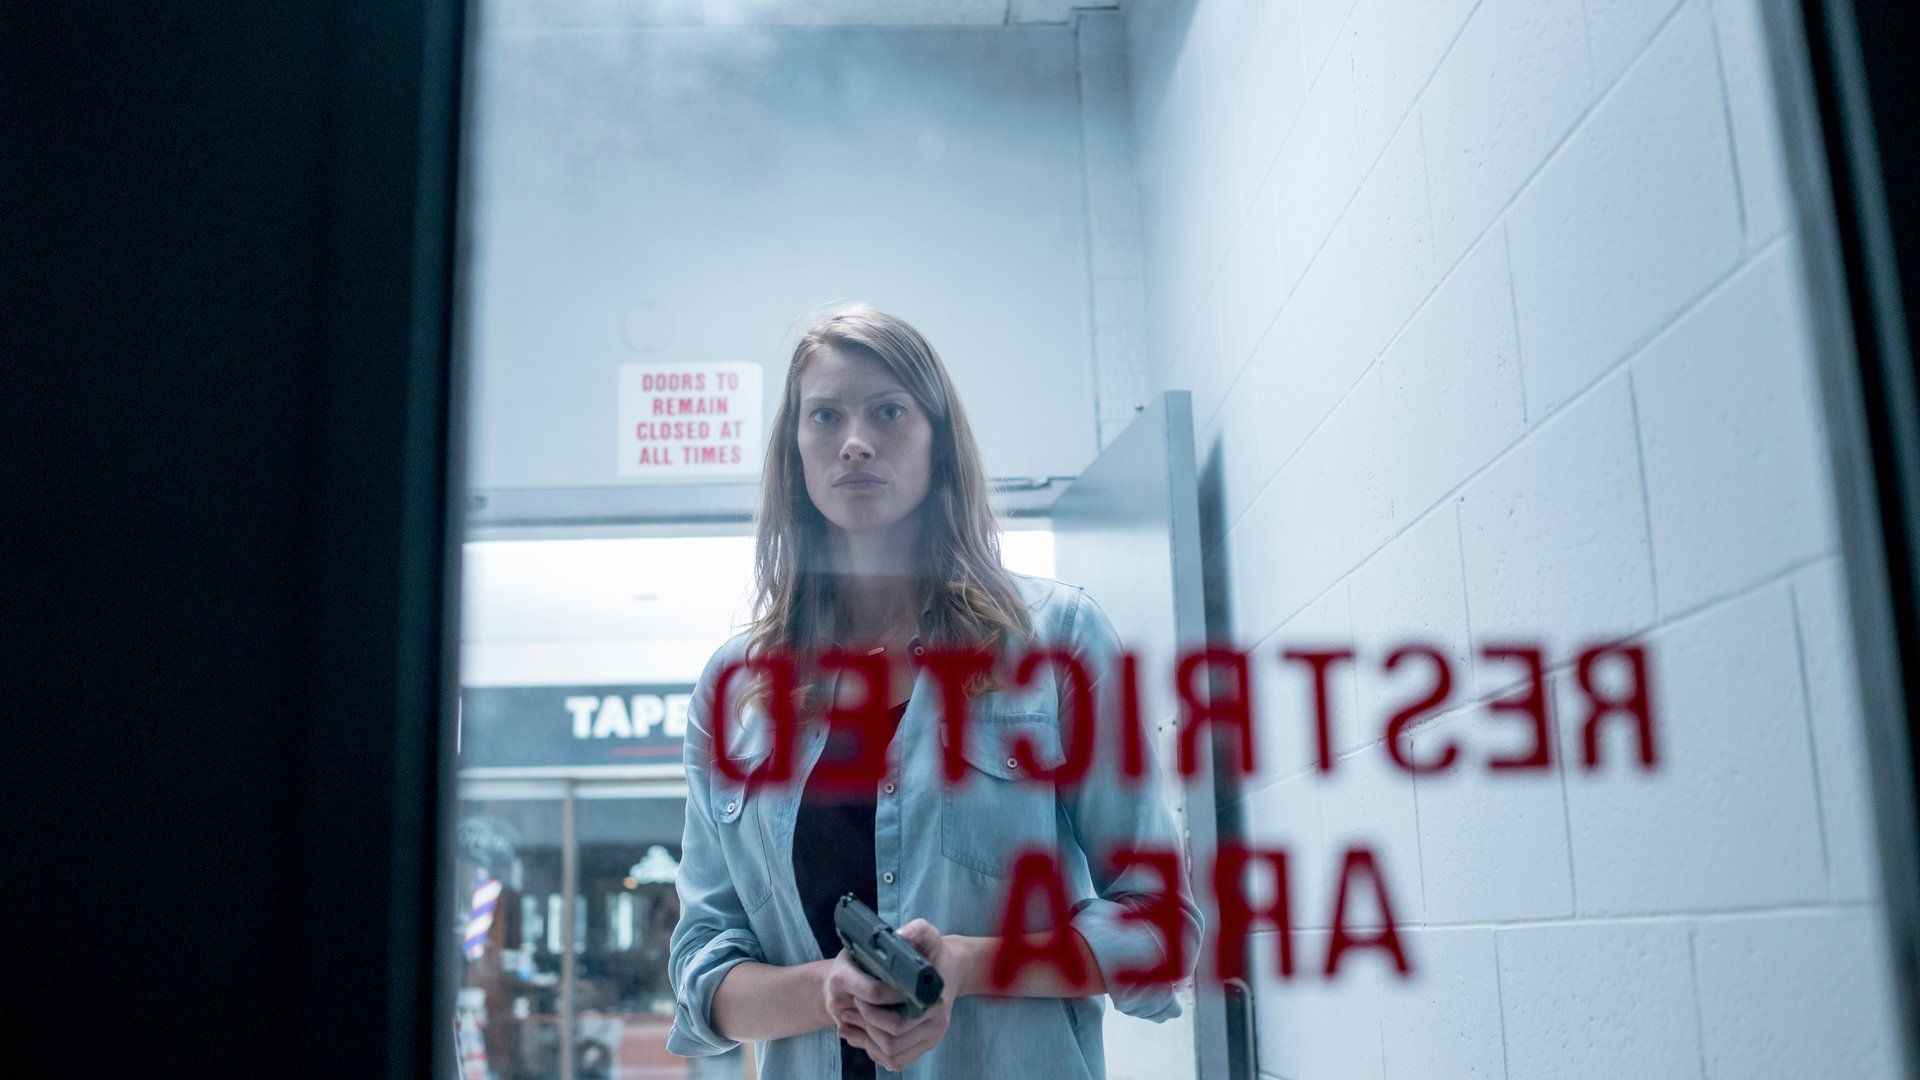 The Mist Season 1 Episode 5 The Waiting Room full Episode Hd Quality 1080p 123movies Free Download Watch Movies Online 123movies